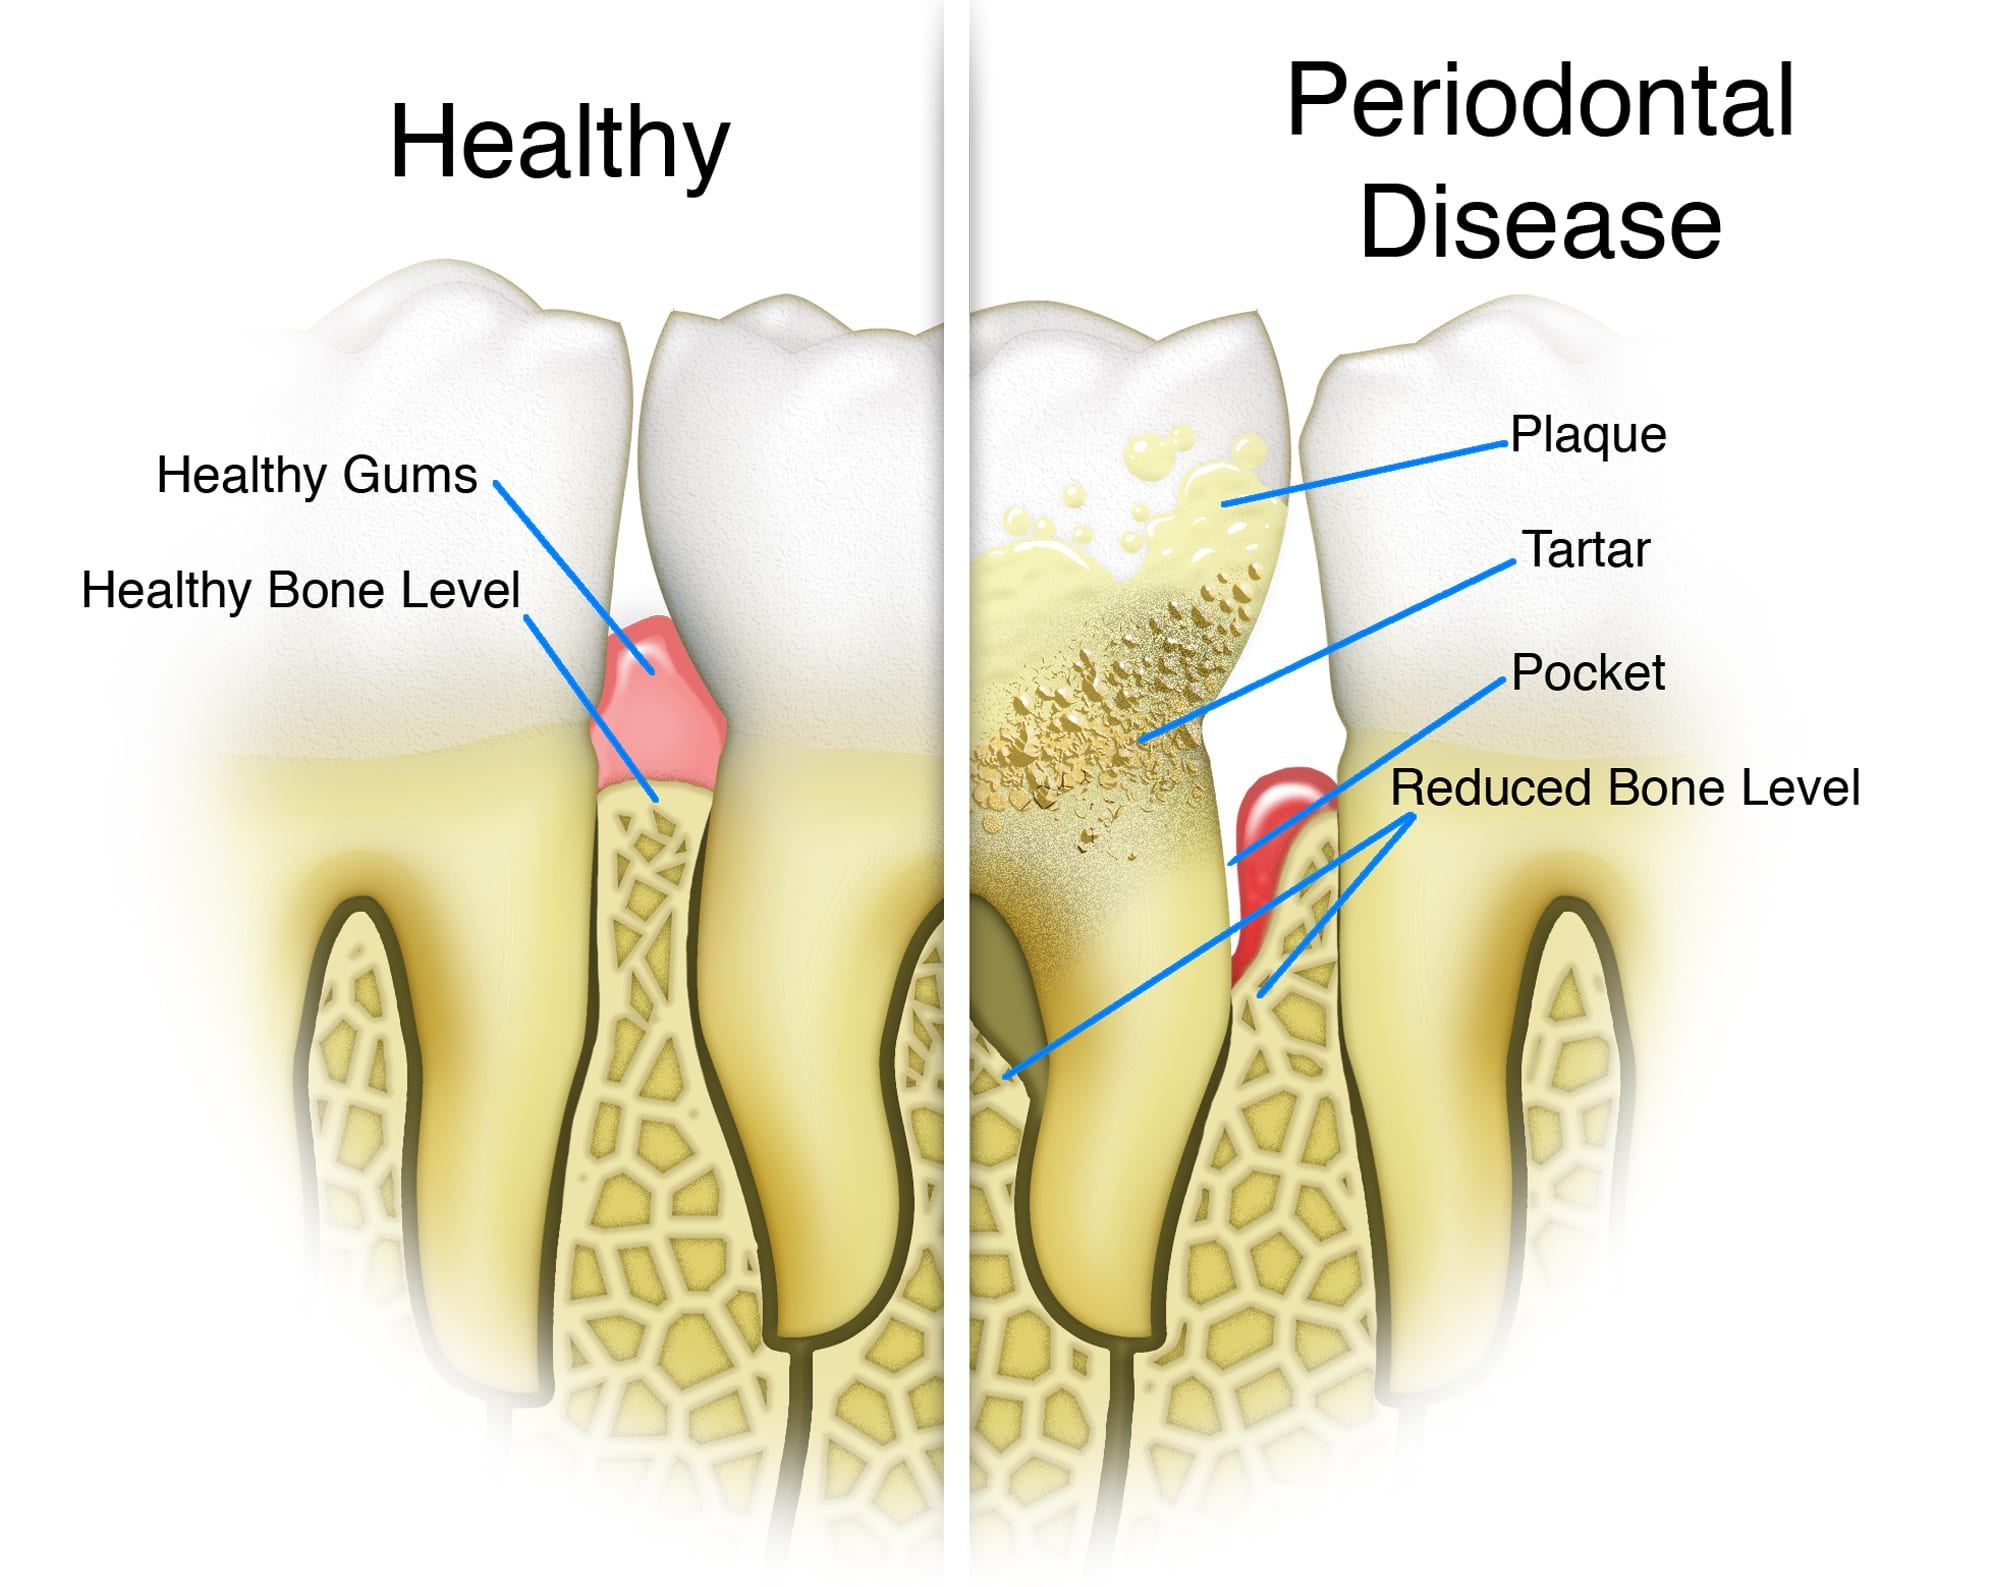 Periodontal Disease Can Cause Heart Problems or Stroke